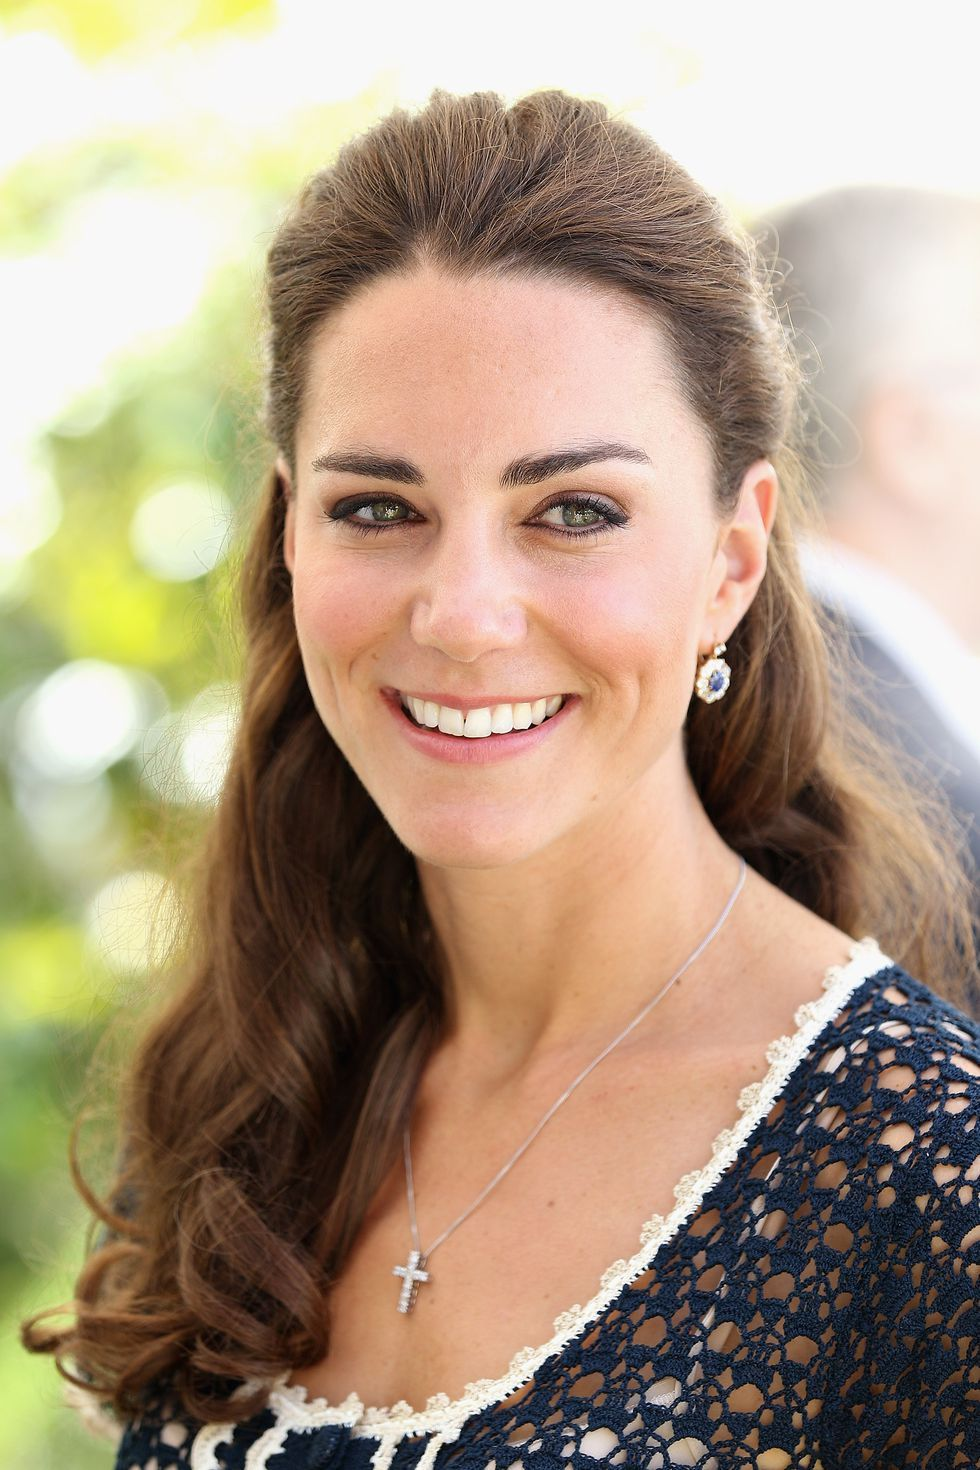 9 Genius Beauty Hacks the Royals Use to Look Flawless - Royal